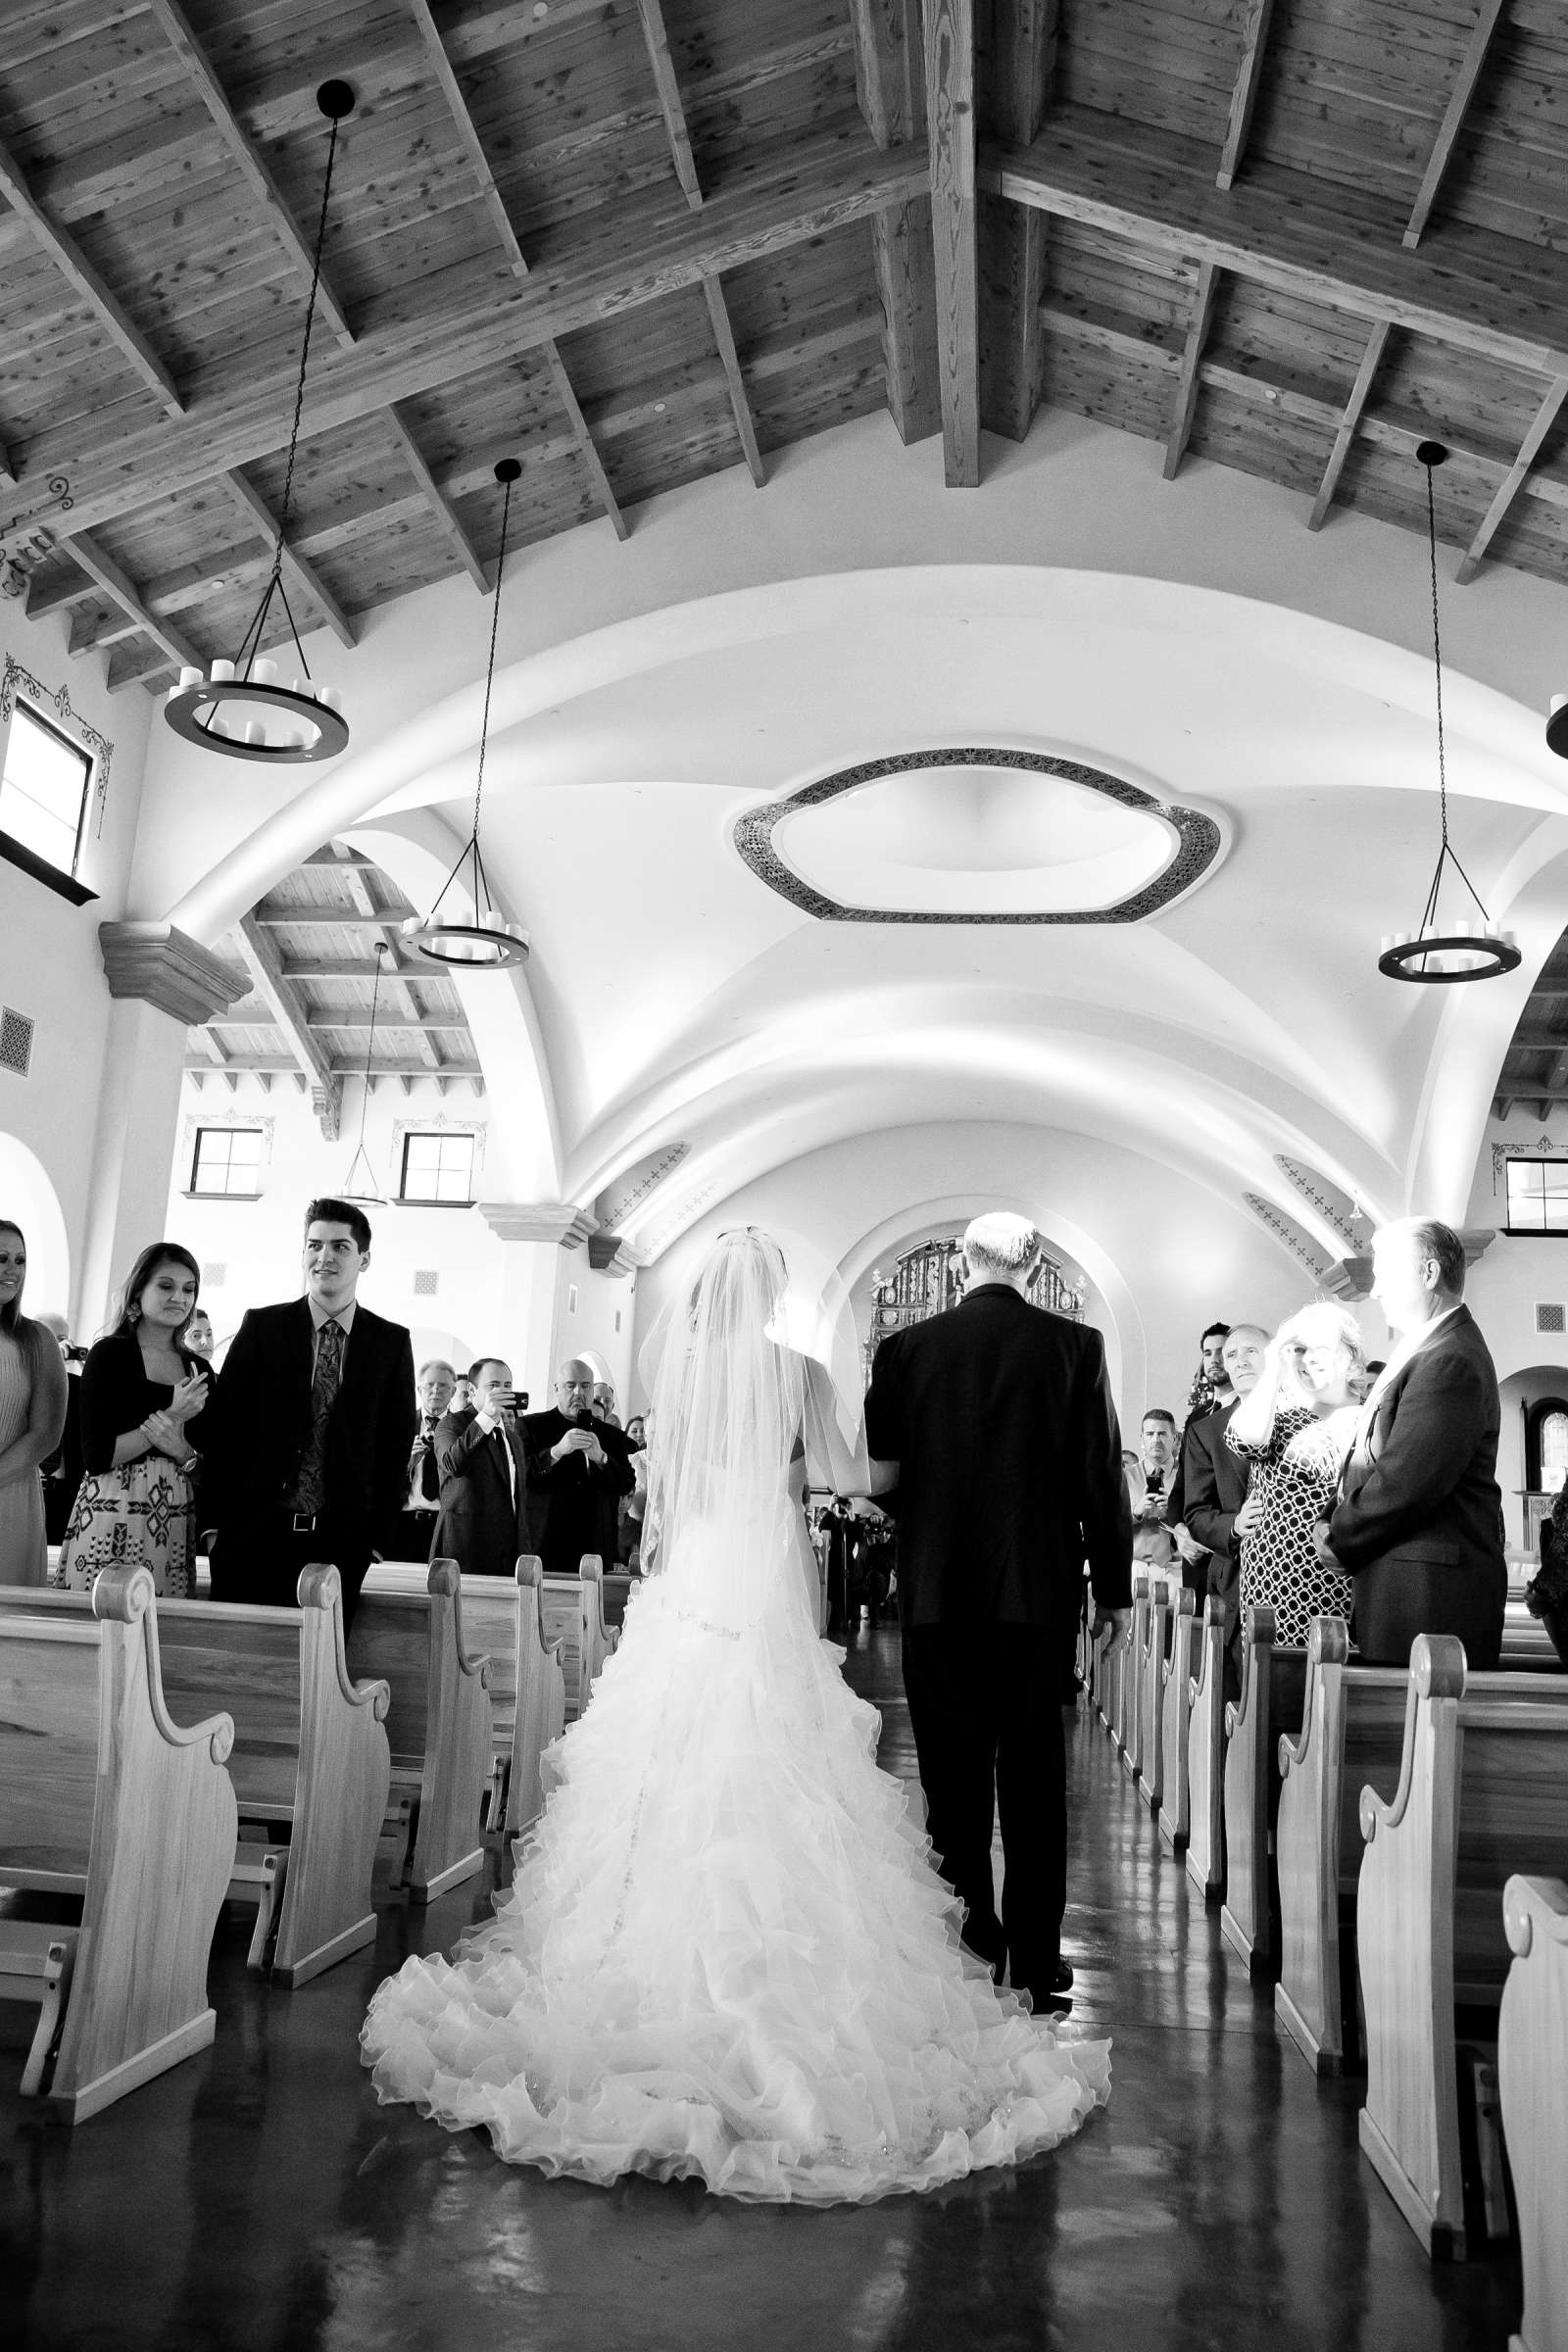 Fairmont Grand Del Mar Wedding, Angela and Tom Wedding Photo #28 by True Photography